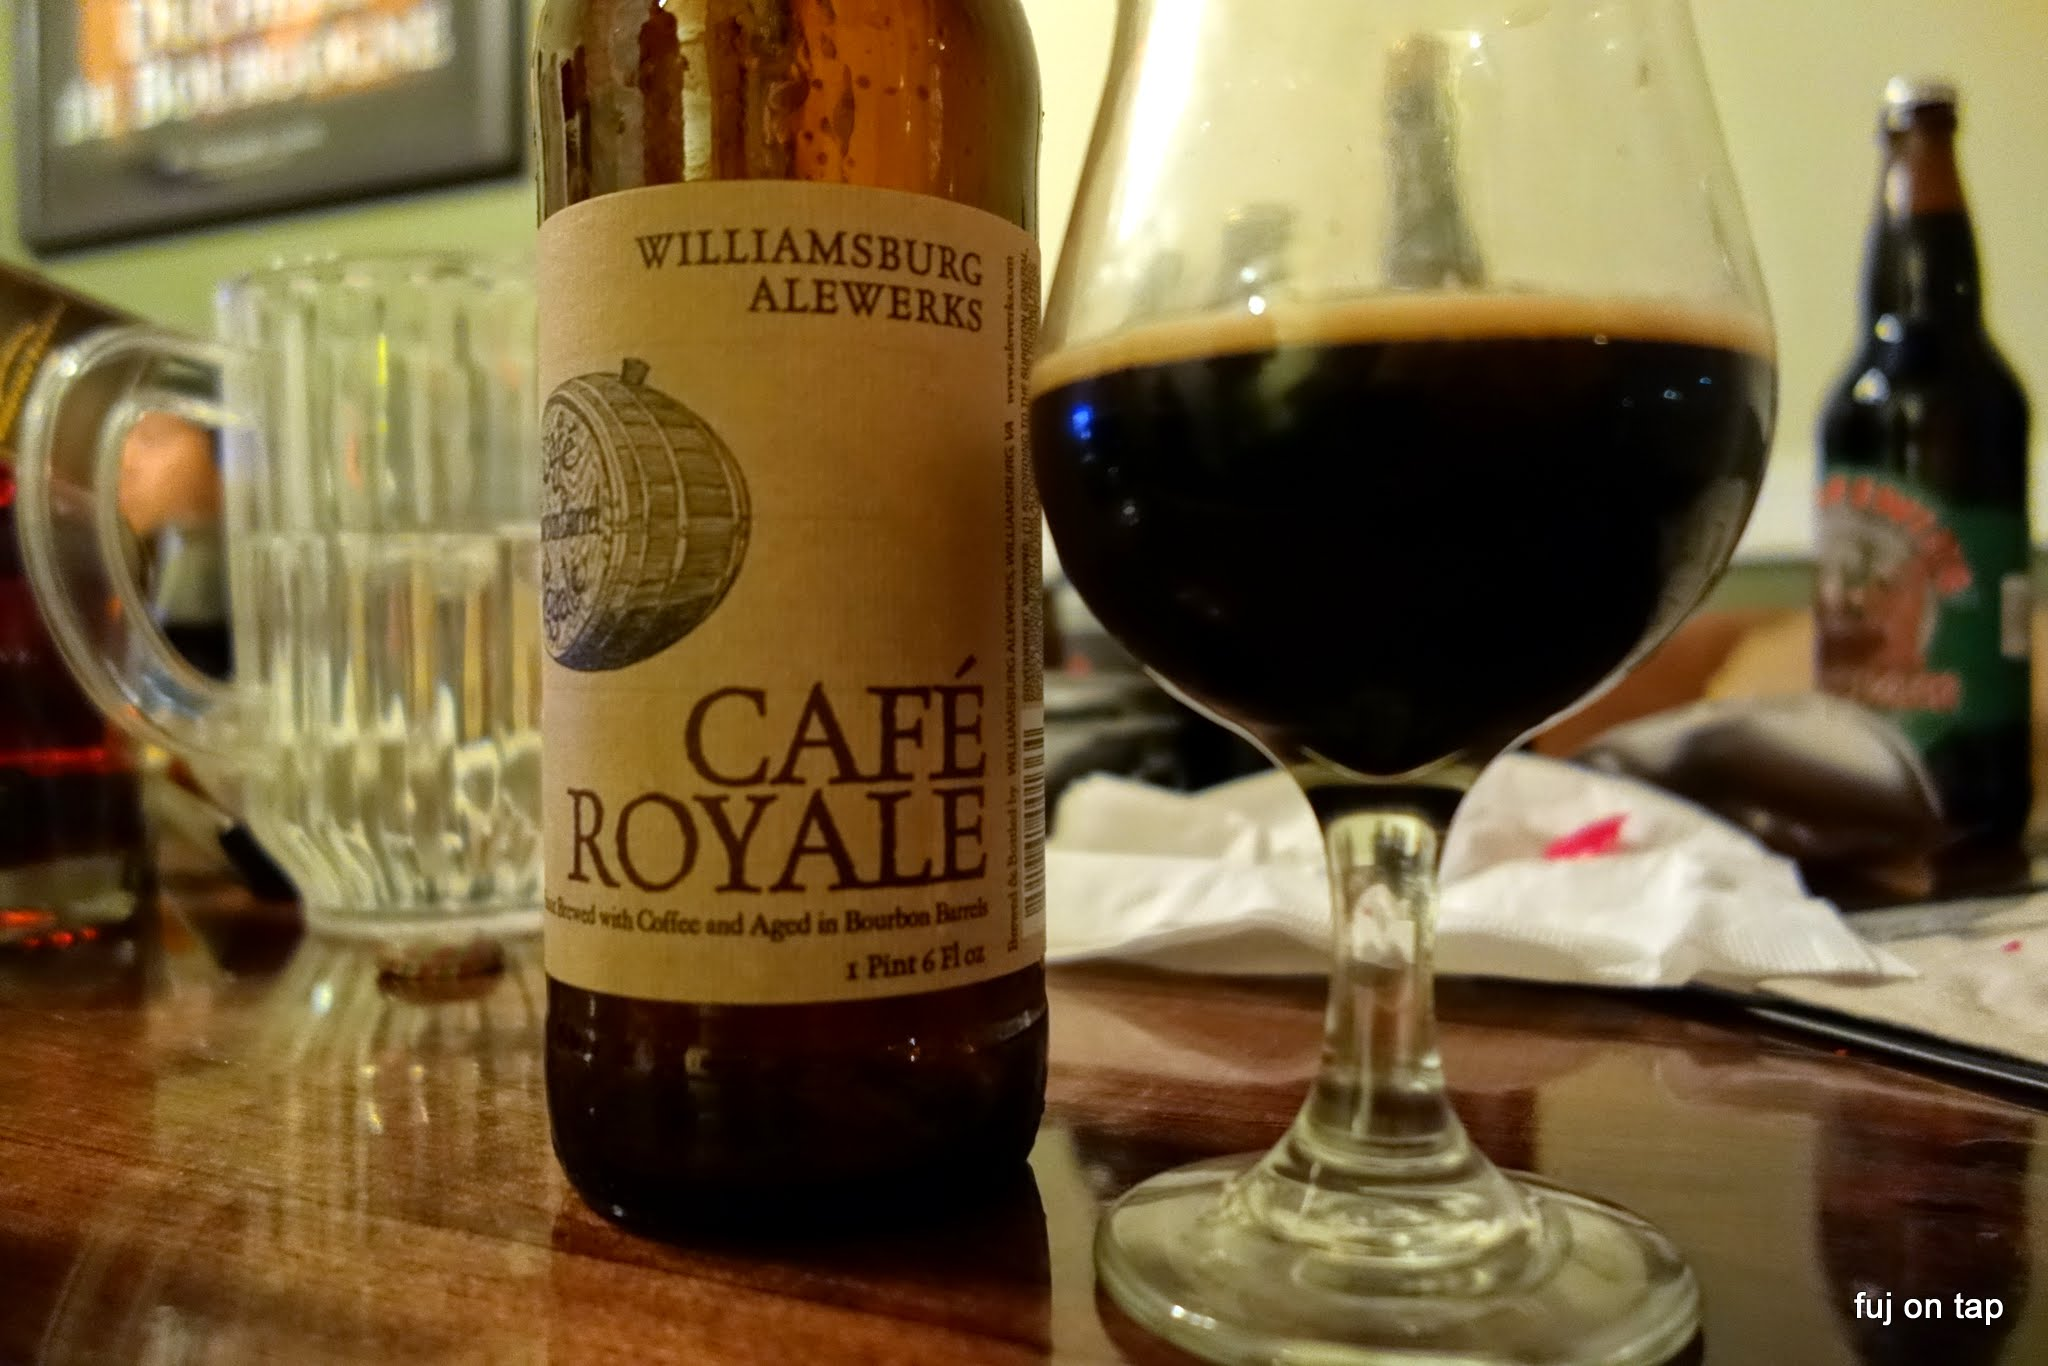 Williamsburg Aleworks Cafe Royale